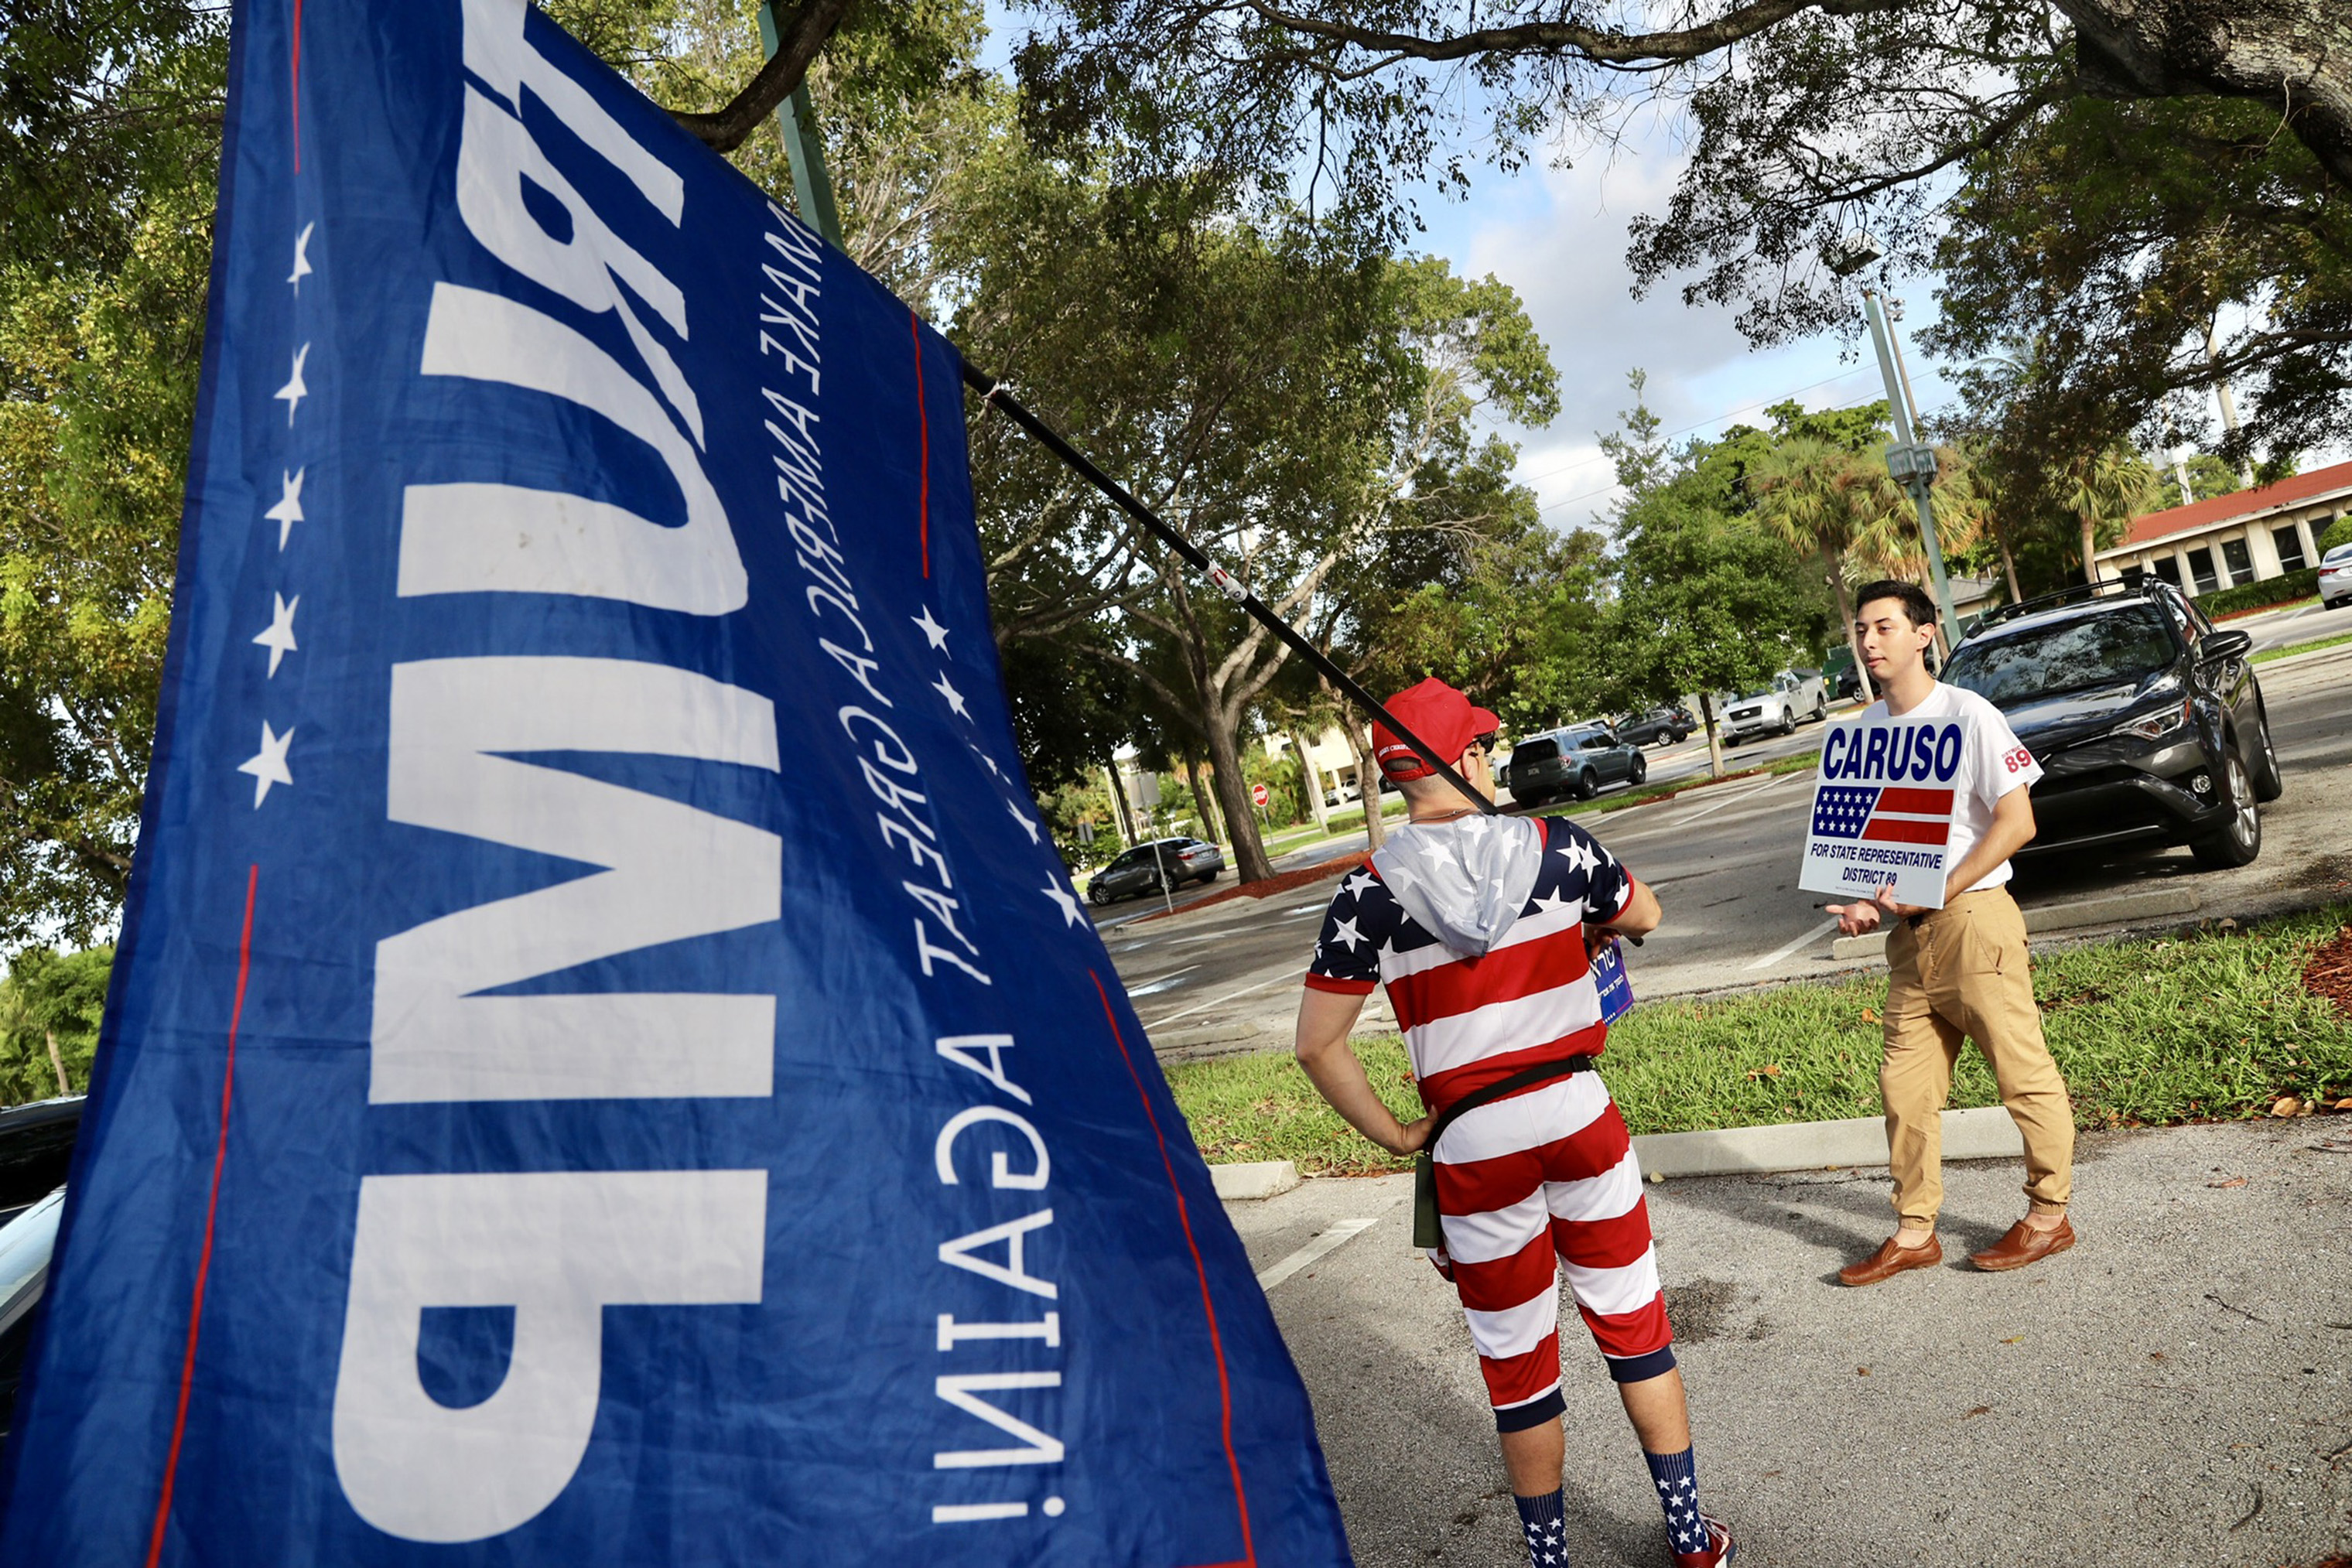 Mike Caruso campaign employee Isaac Rheinbolt, chats with a Trump supporter, who did not want to be identified, in the parking lot of the Boca Raton Community Center on Election Day.